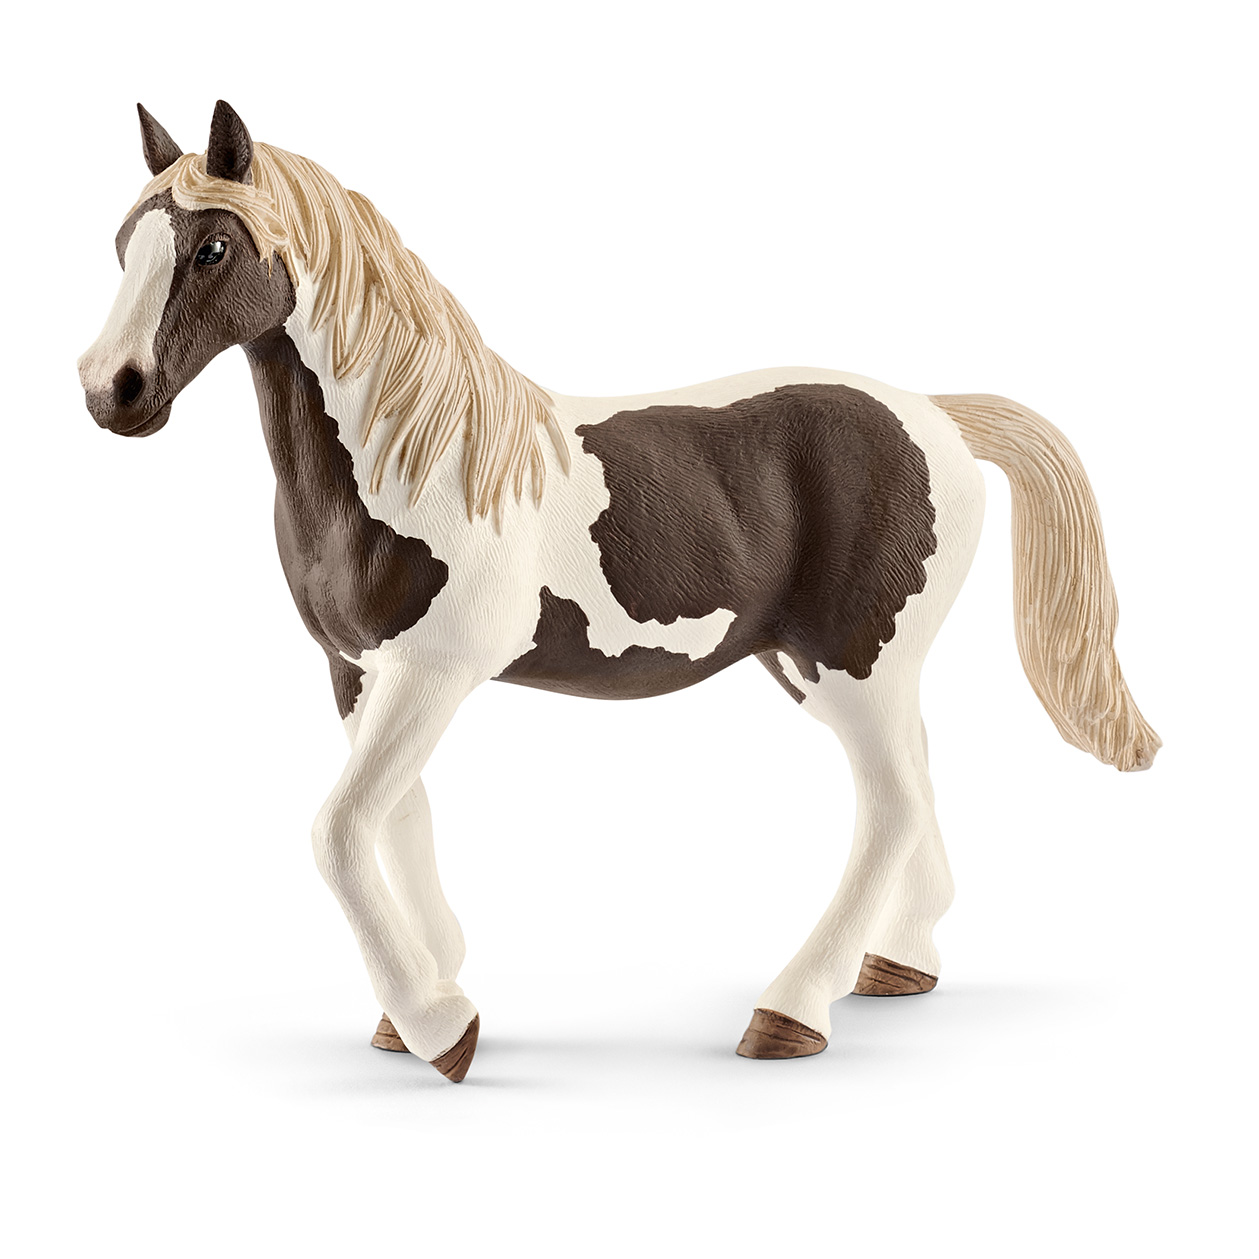 Pinto Foal Schleich Farm Life Horse Figure model number 13803